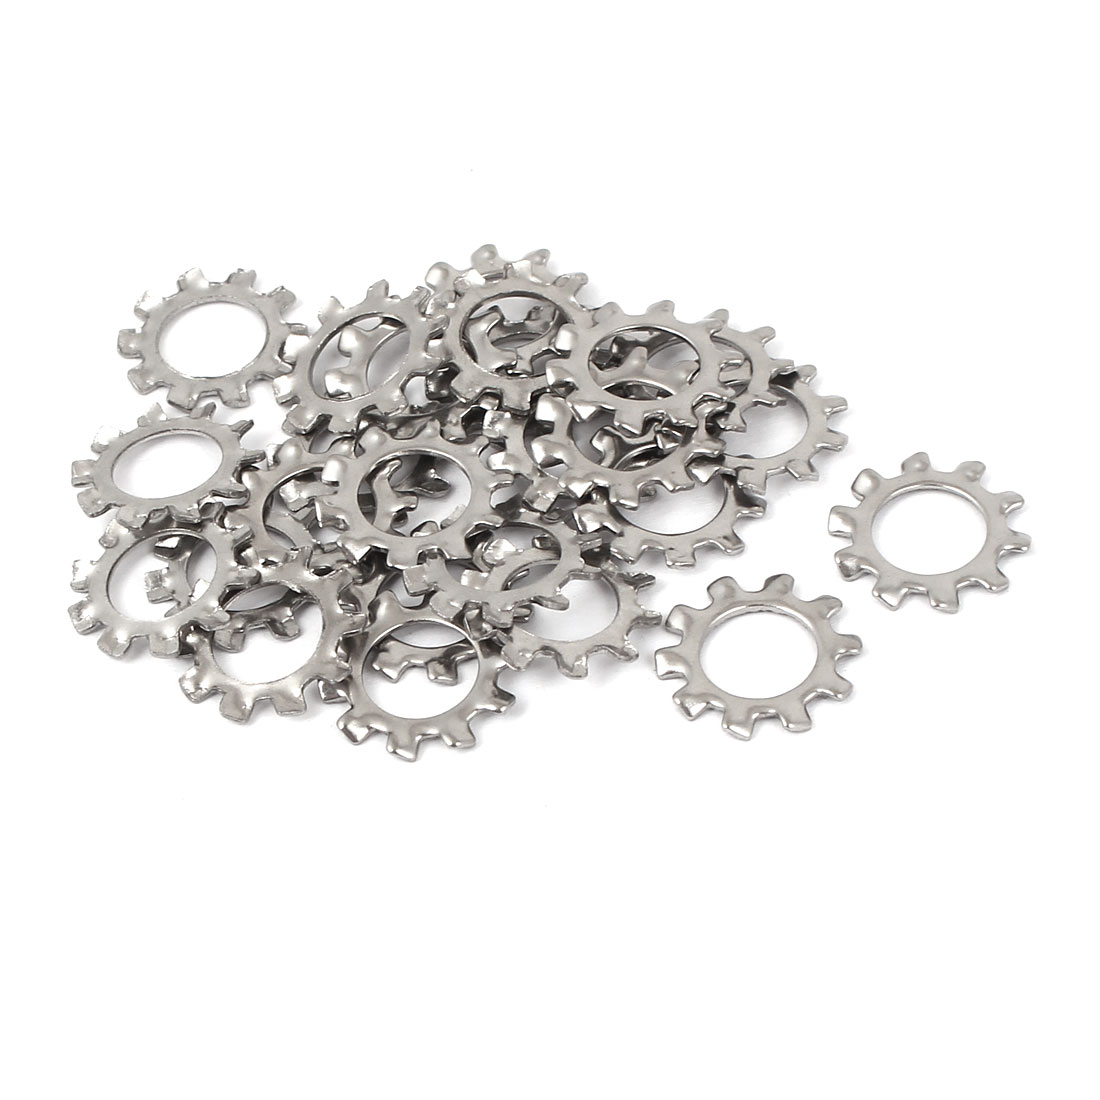 UXCELL High Quality 25 Pcs/lot M8 304 Stainless Steel External Star Lock Washers Anti-slip With Outer Tooth 8 X 14 X 1mm